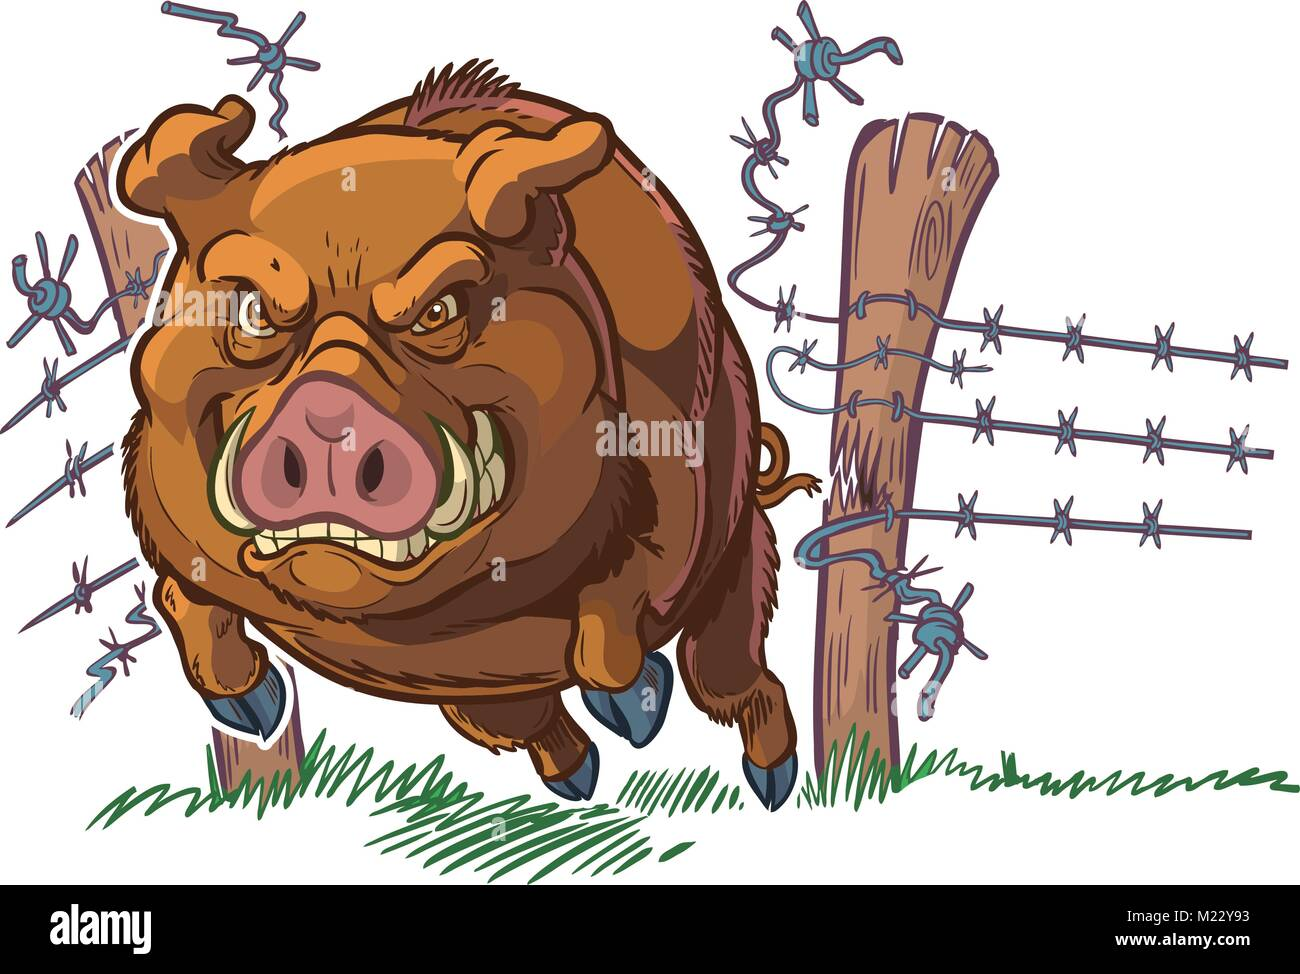 illustration angry wild pig boar stock photos illustration angry wild pig boar stock images. Black Bedroom Furniture Sets. Home Design Ideas